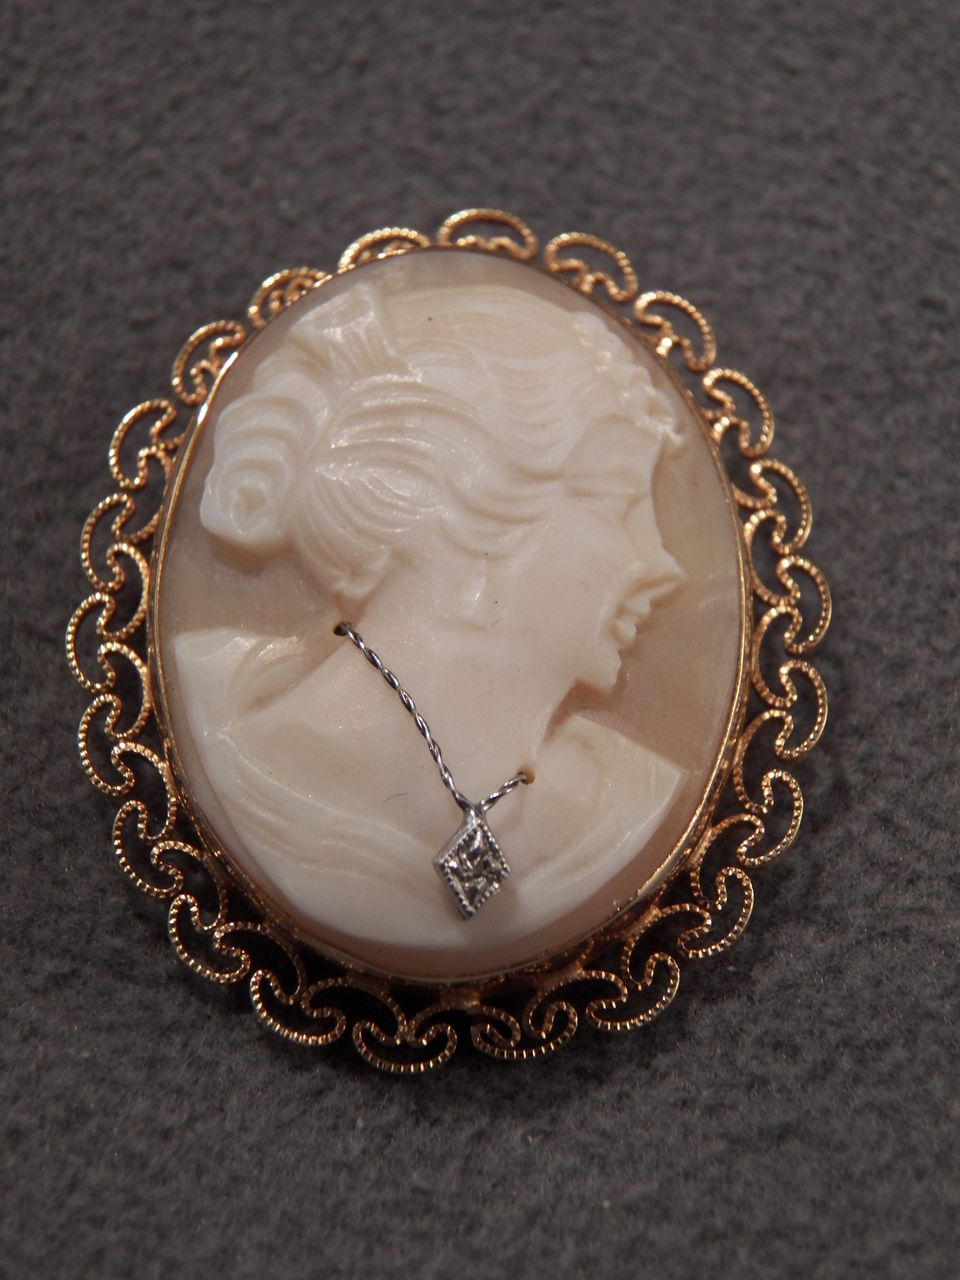 Vintage  12 K Yellow Gold Filled Classic  Cameo Diamond Pendant Charm Pin Brooch